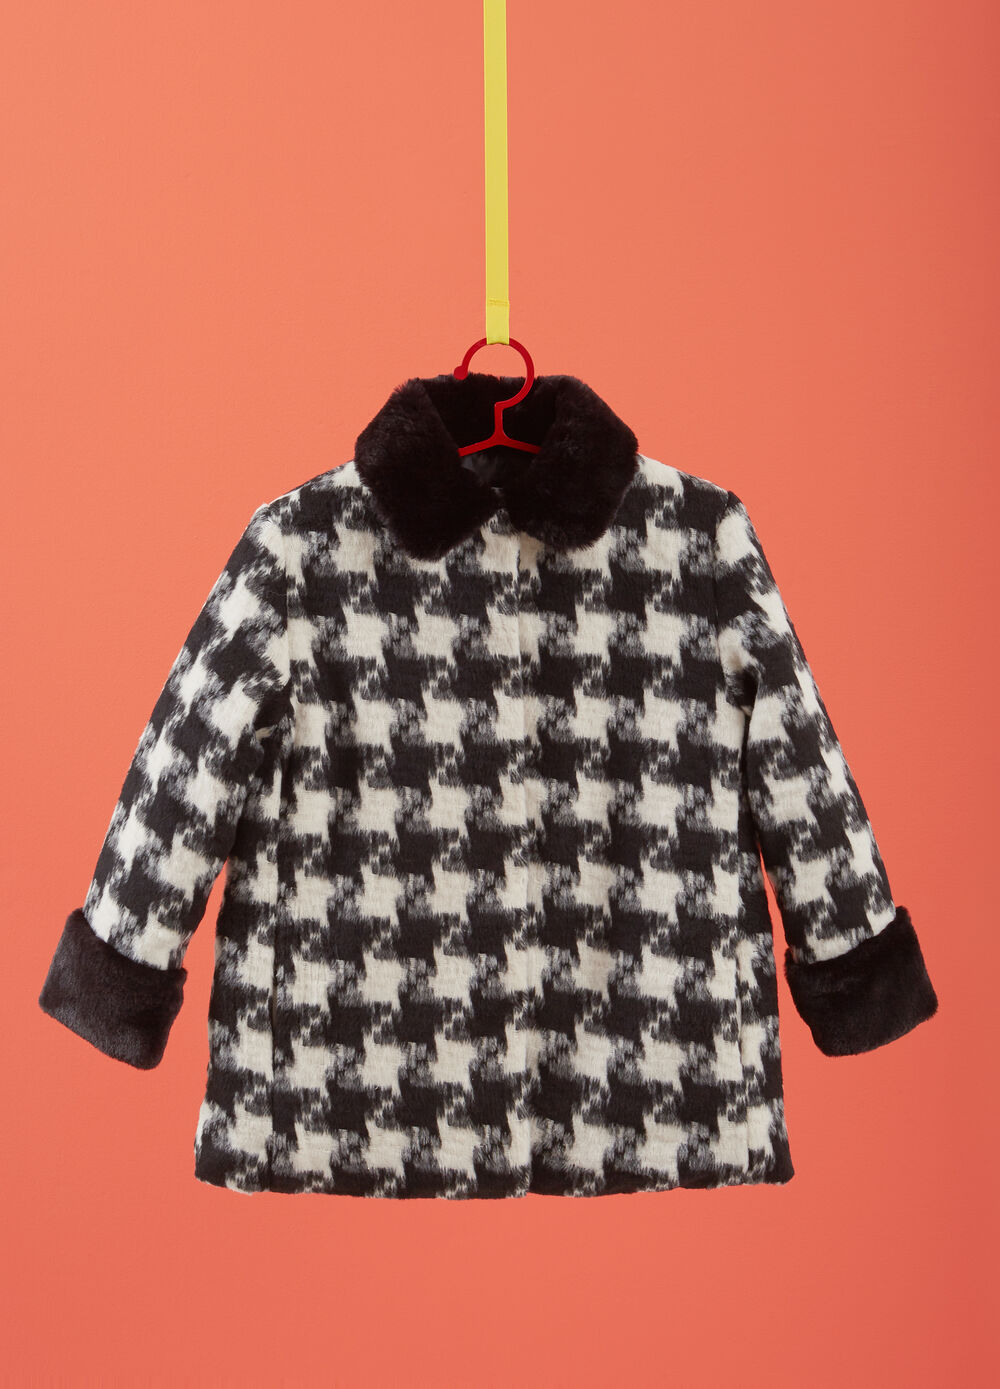 Coat with hounds' tooth pattern and faux fur